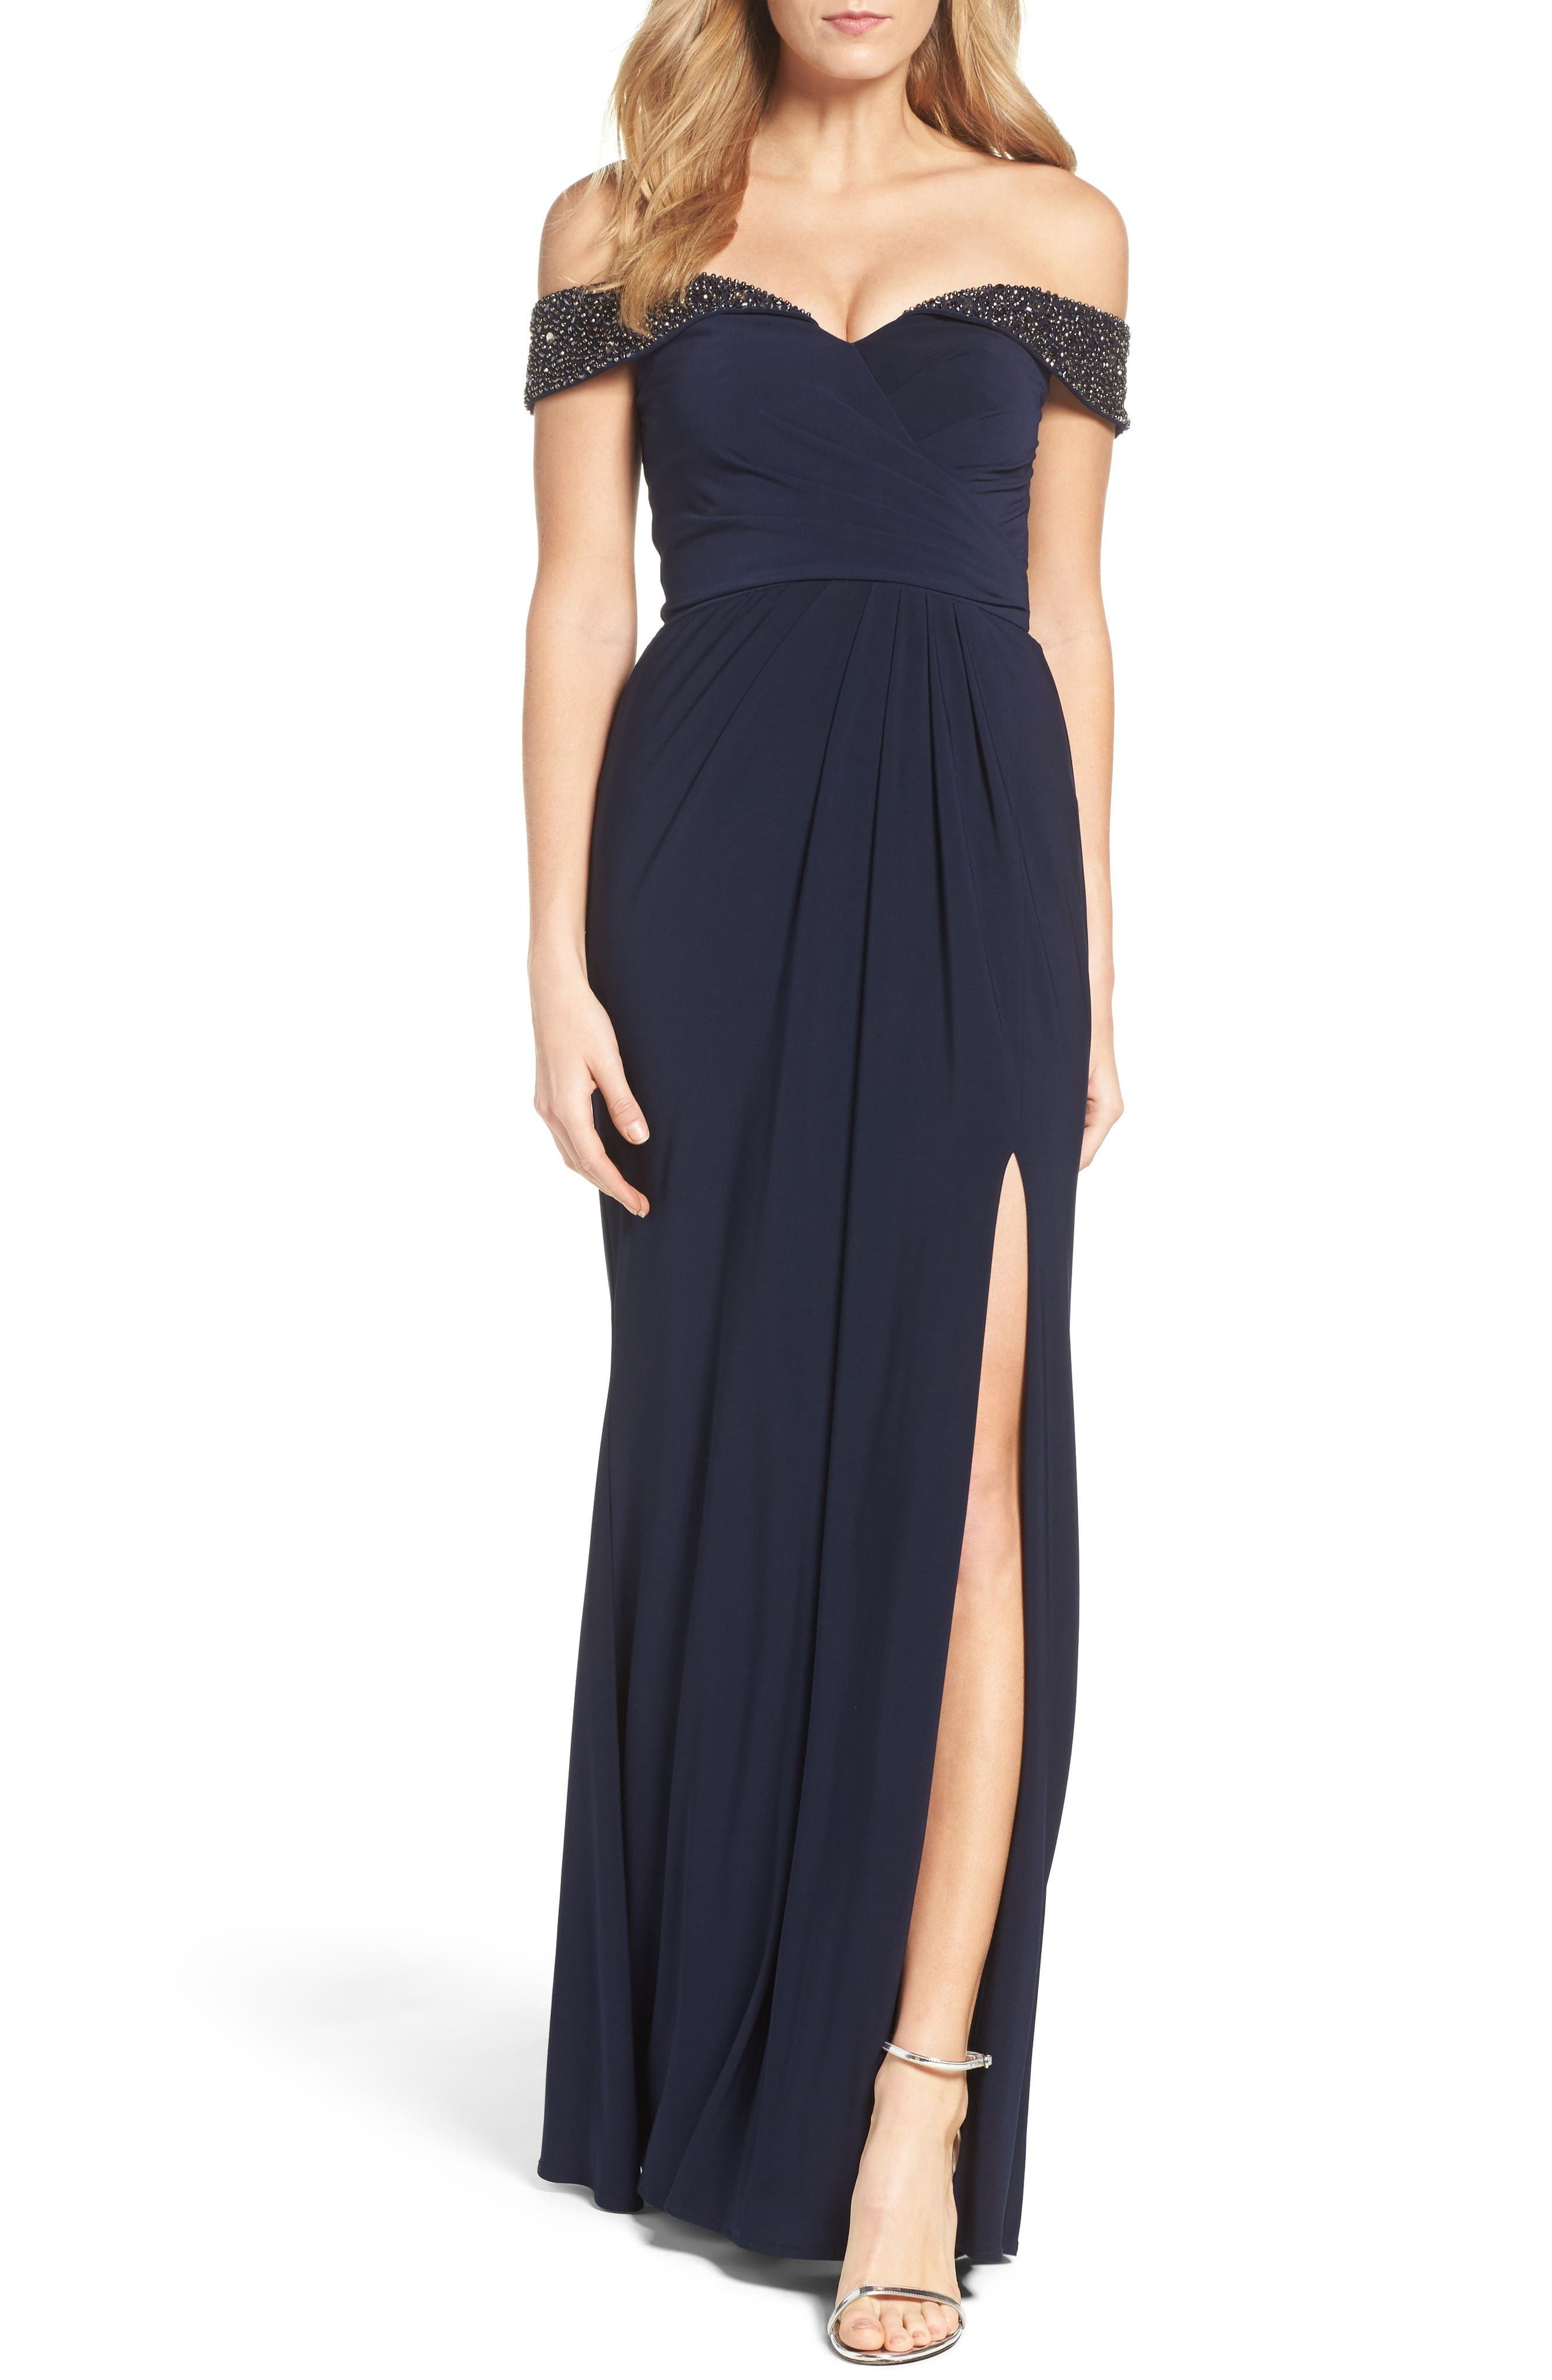 Alternate Image 1 Selected - Xscape Off the Shoulder Beaded Gown (Regular & Petite)